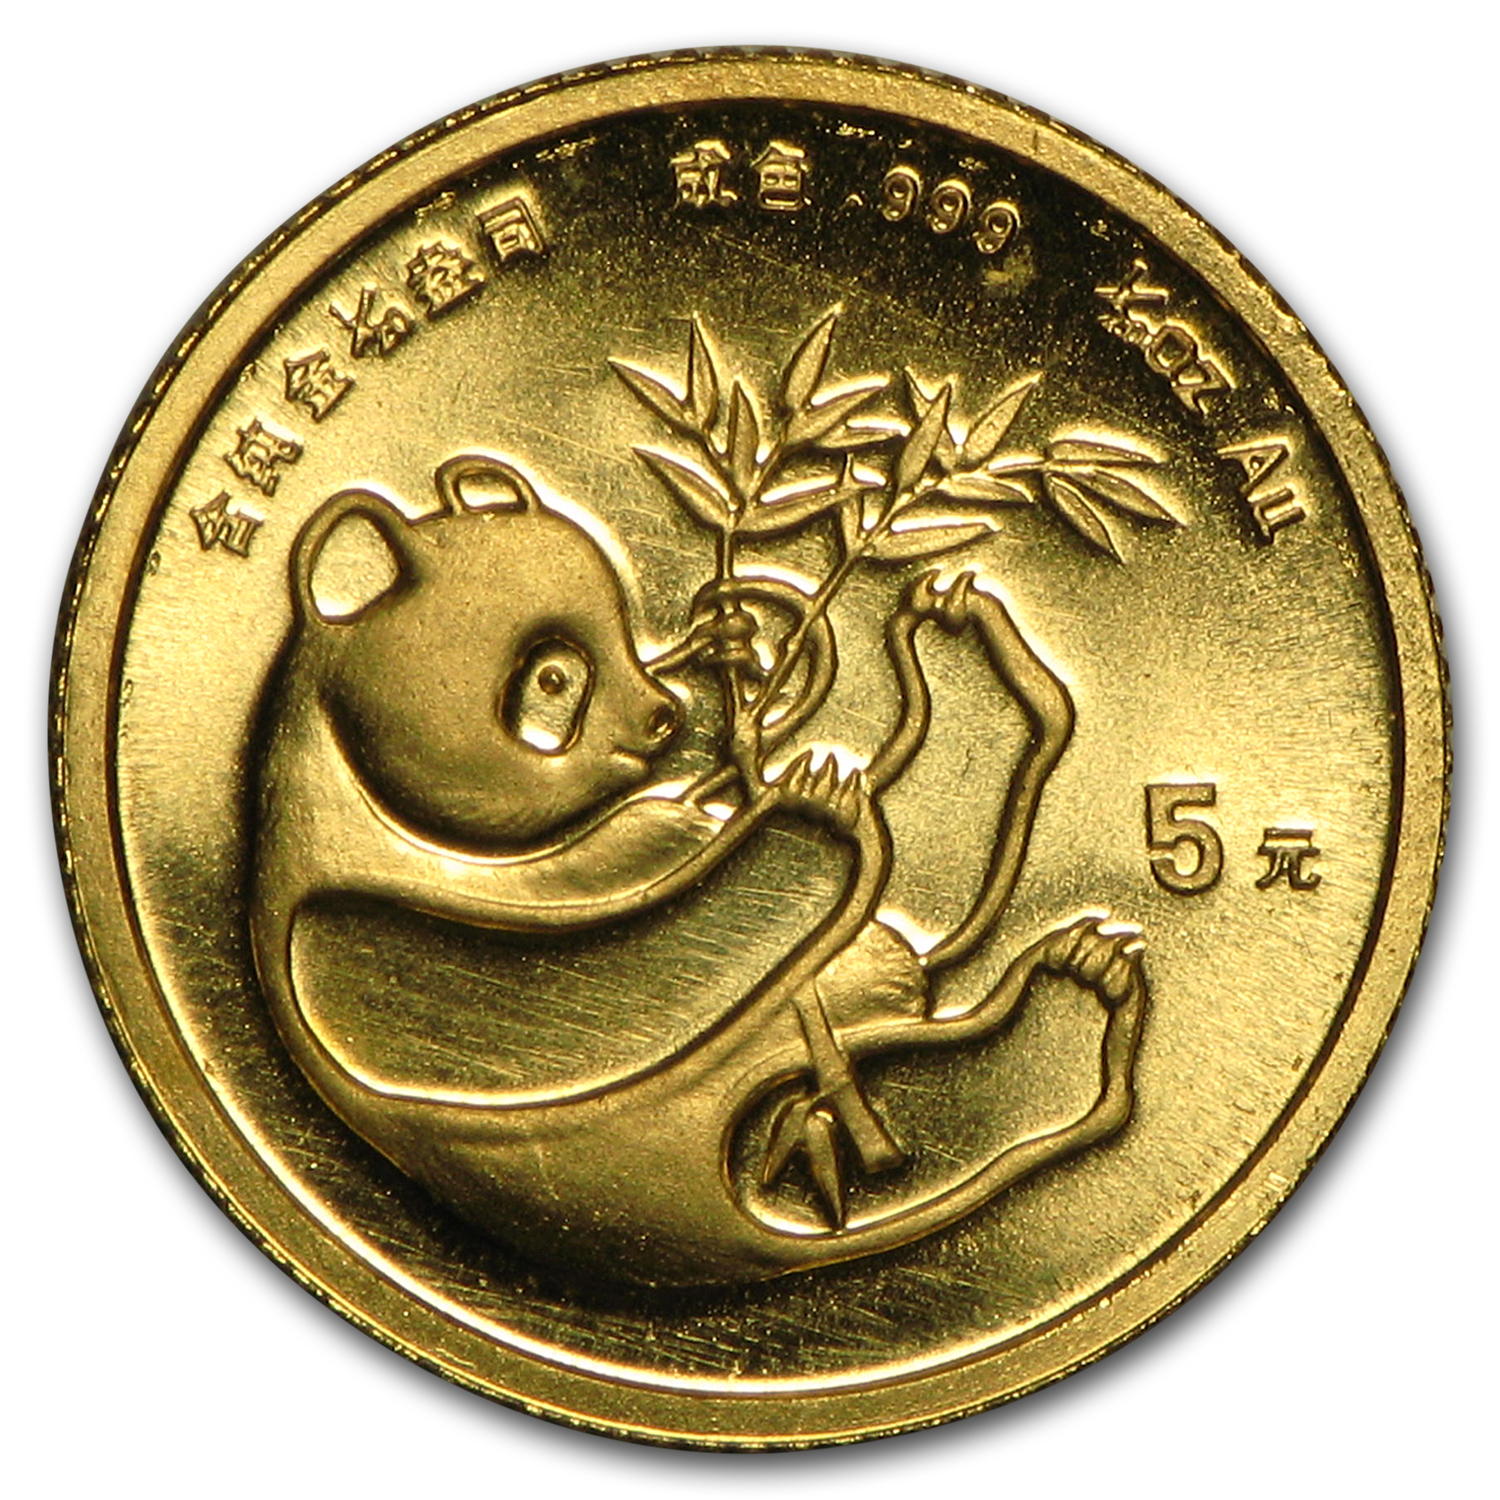 1/20 oz Gold Chinese Pandas - NOT Sealed